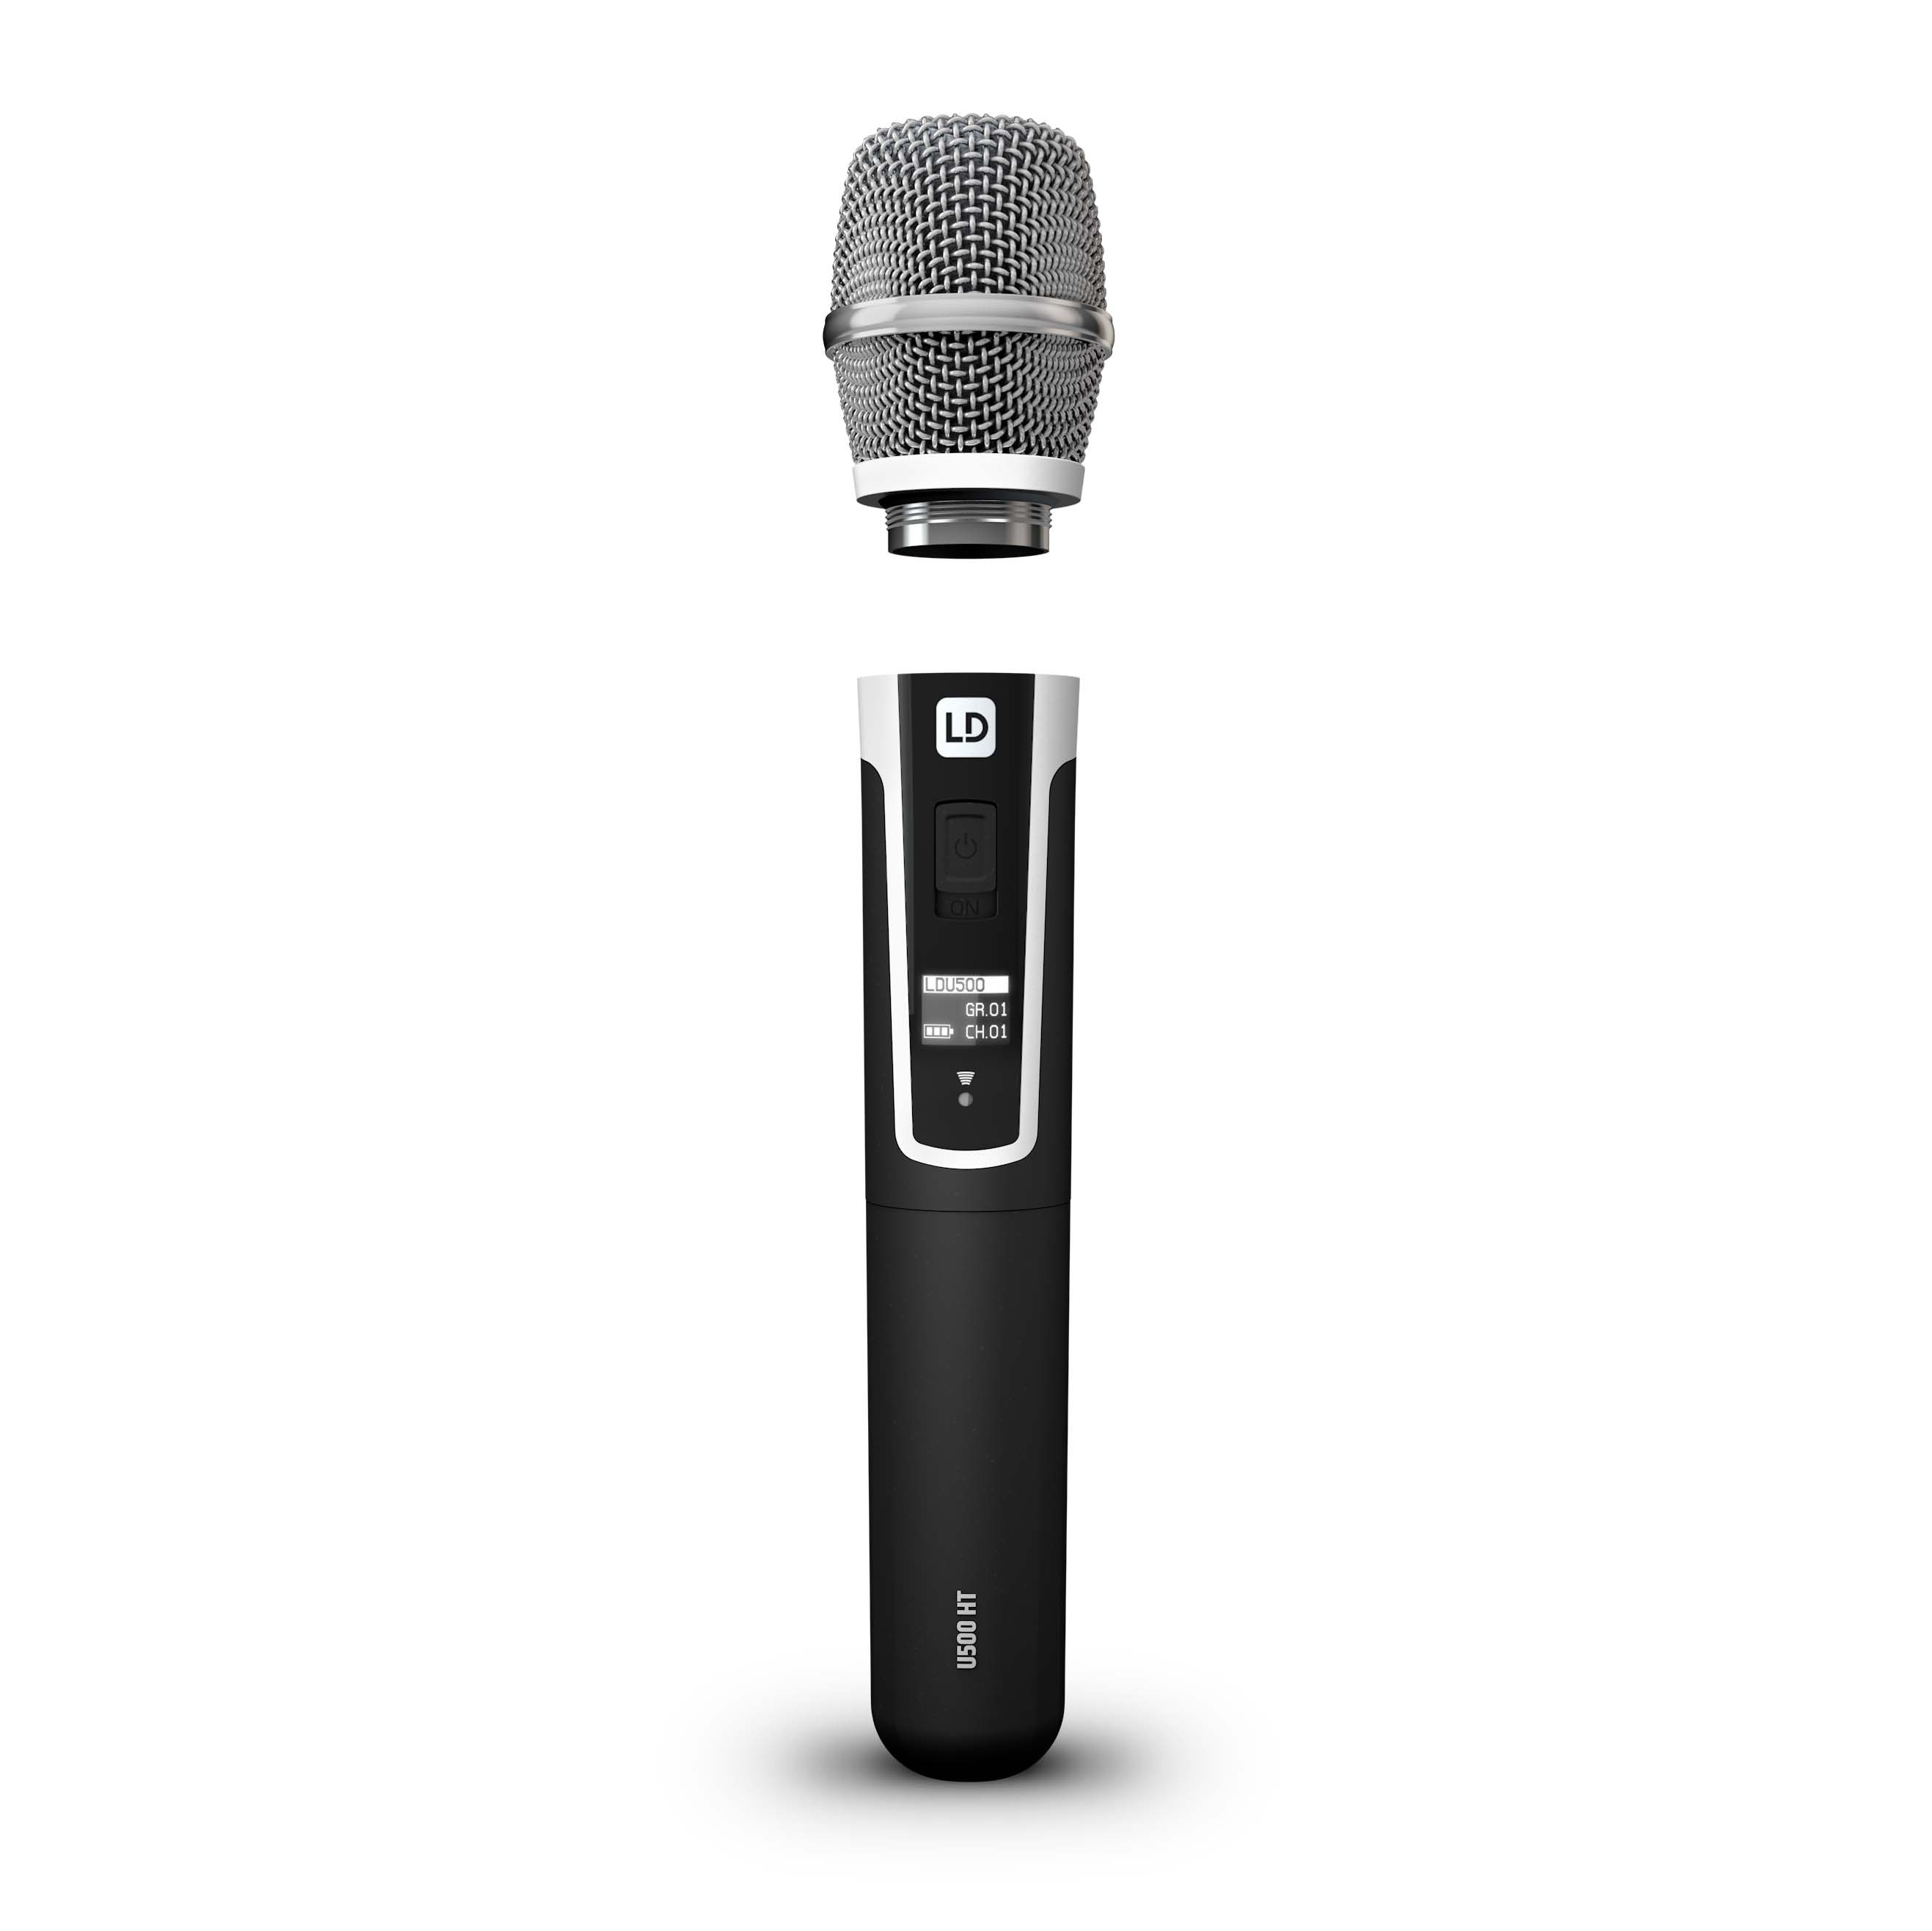 U506 HHC 2 Wireless Microphone System with 2 x Condenser Handheld Microphone